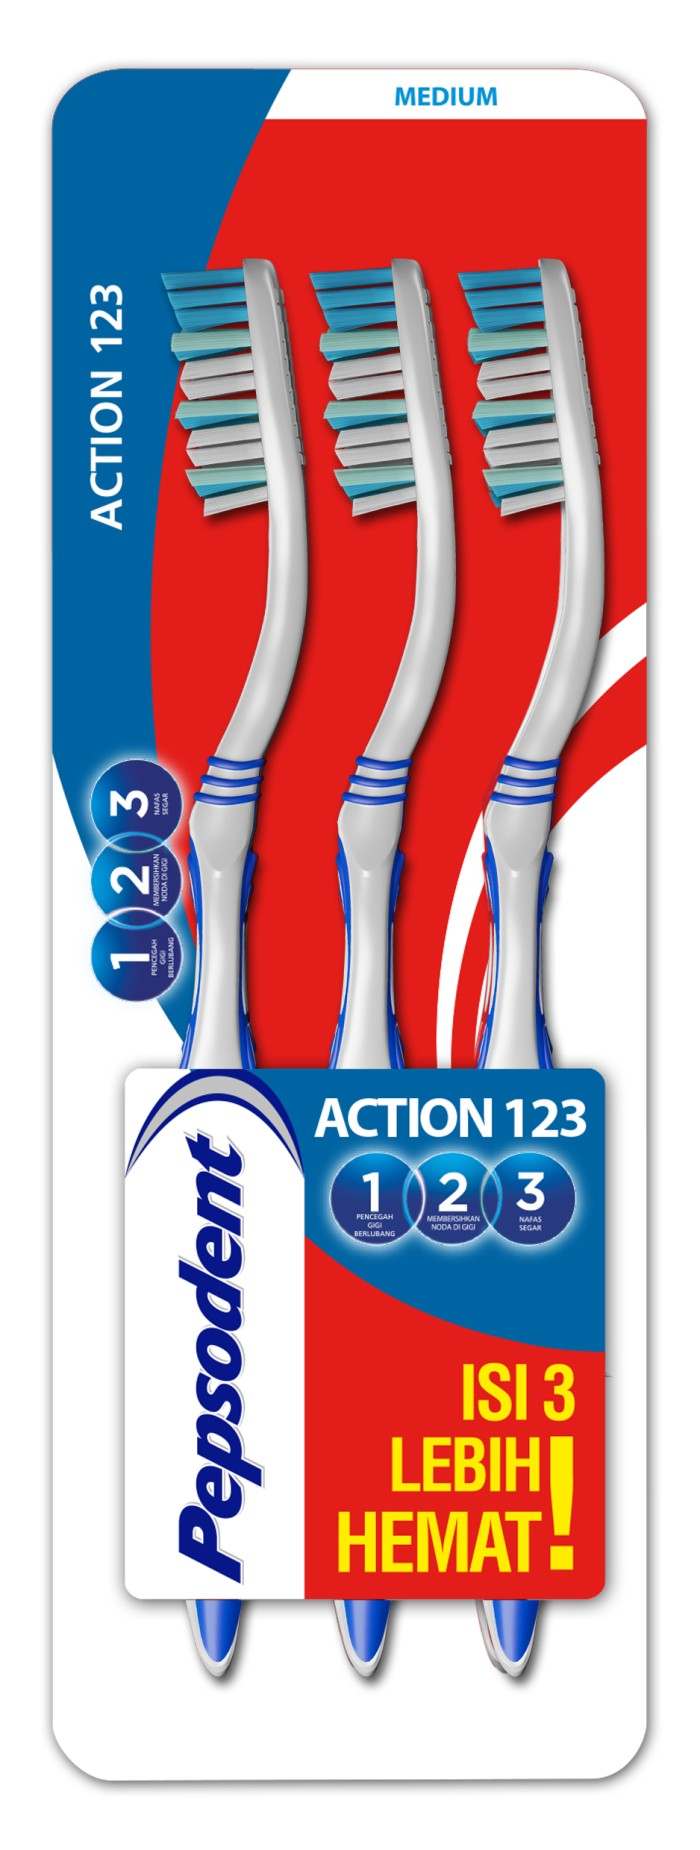 Jual PEPSODENT ACTION 123 SIKAT GIGI MEDIUM MULTIPACK ISI 3 ... a096fcc546